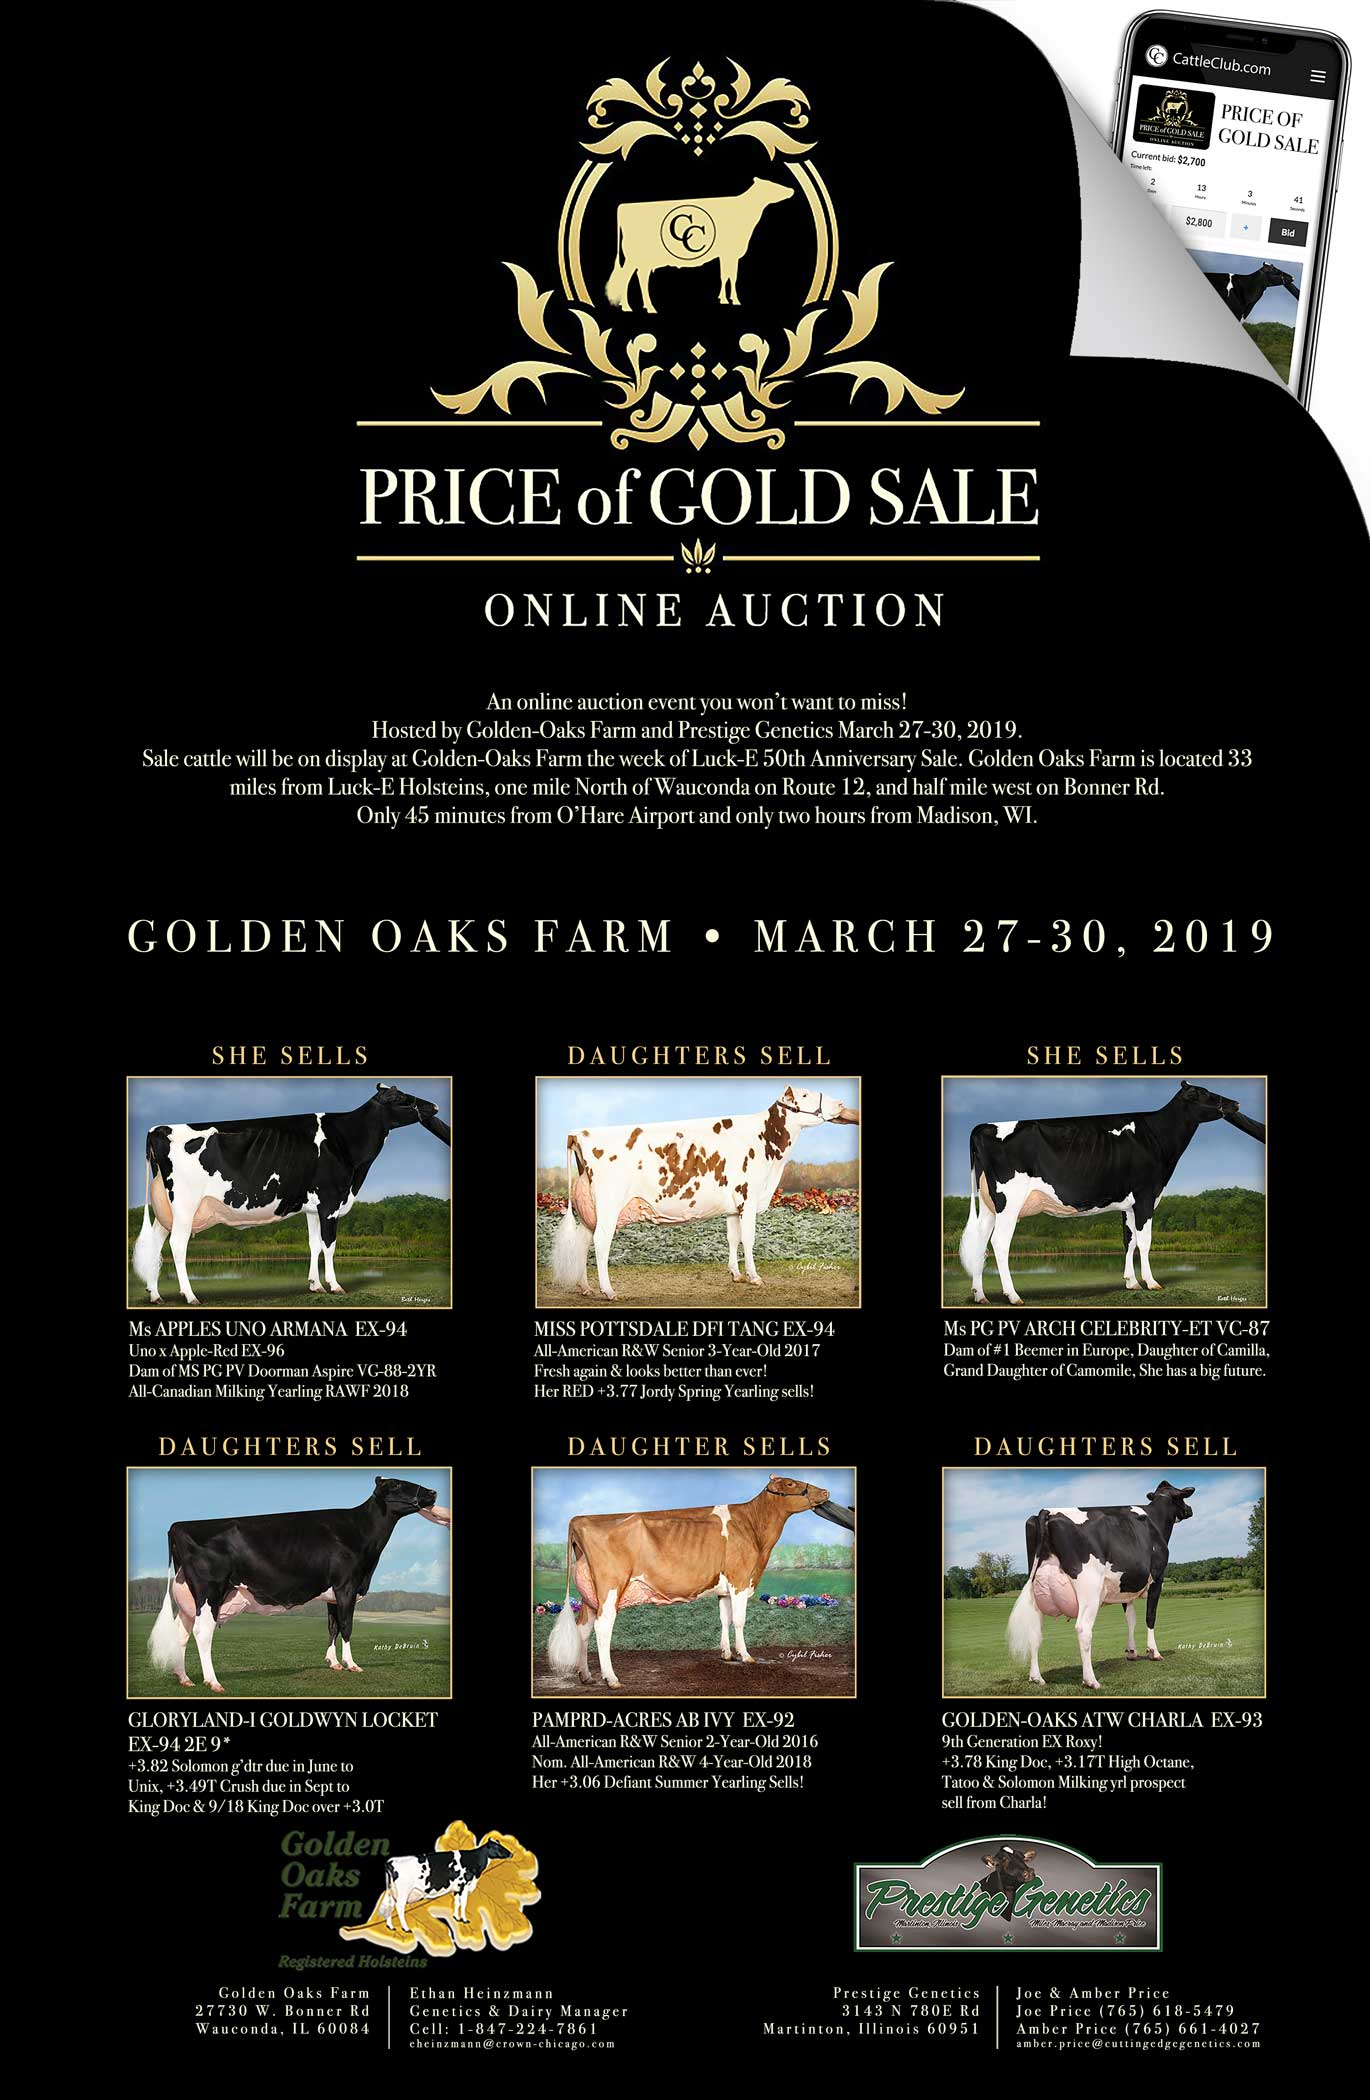 Price of Gold Sale Announced at Golden Oaks Farm